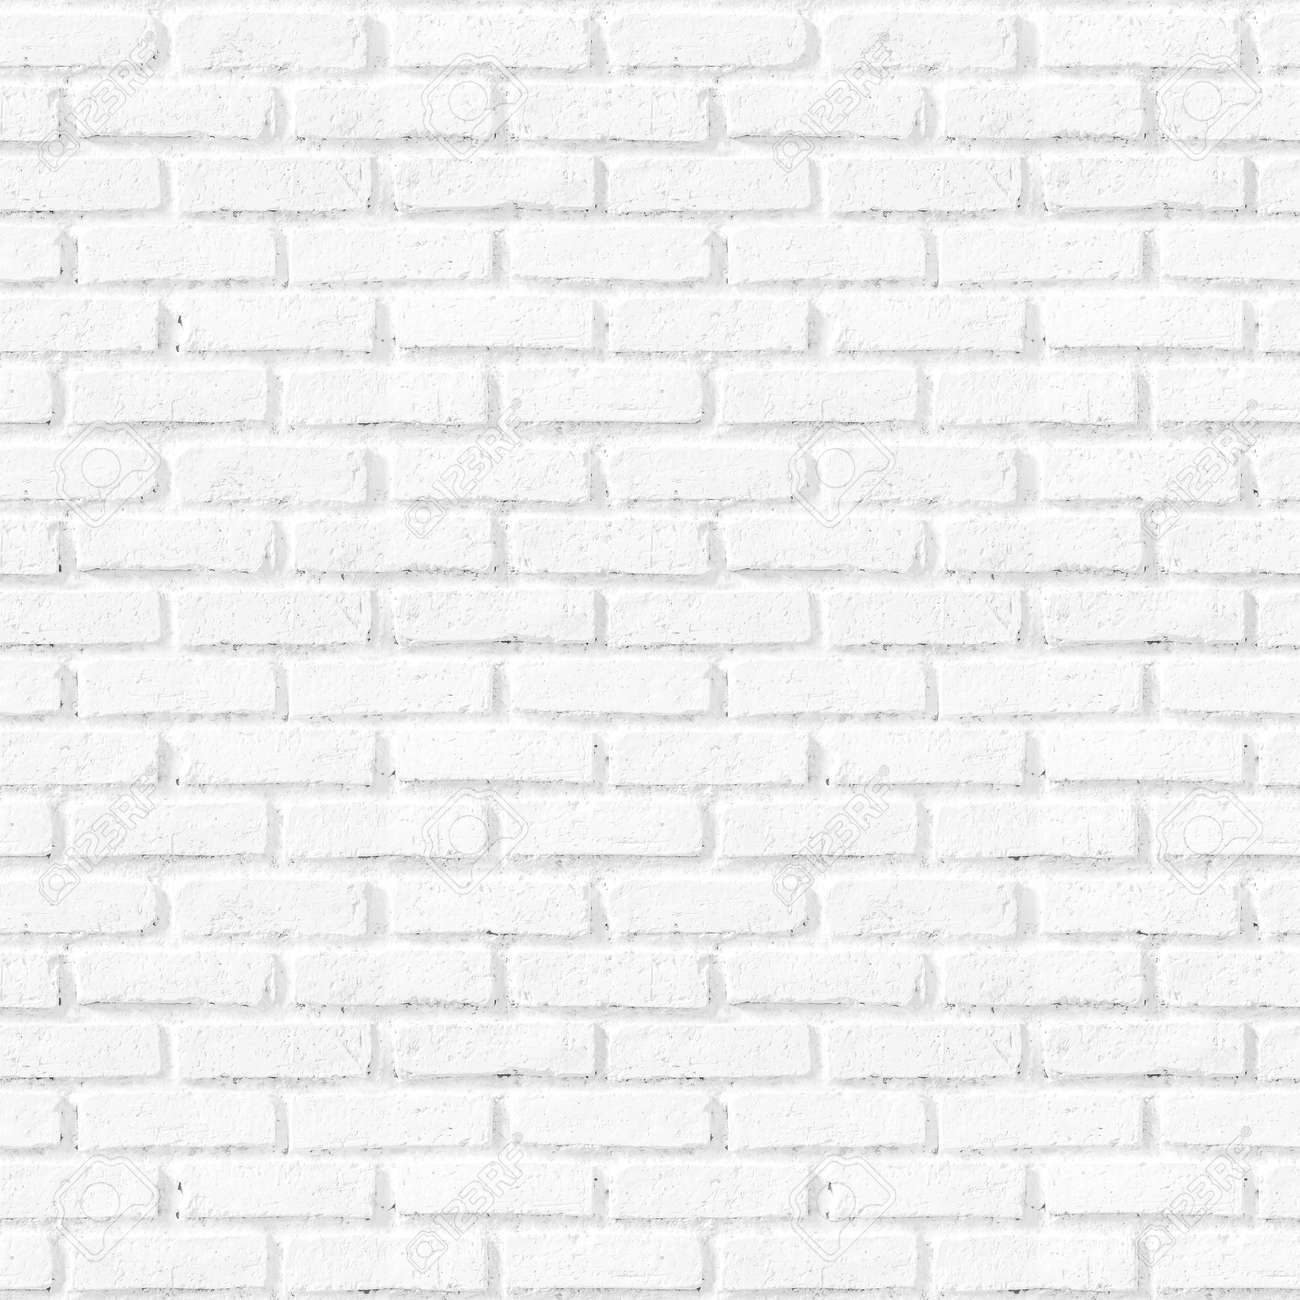 Bathroom pattern concept: Seamless vertical white brick wall texture background - 156216268